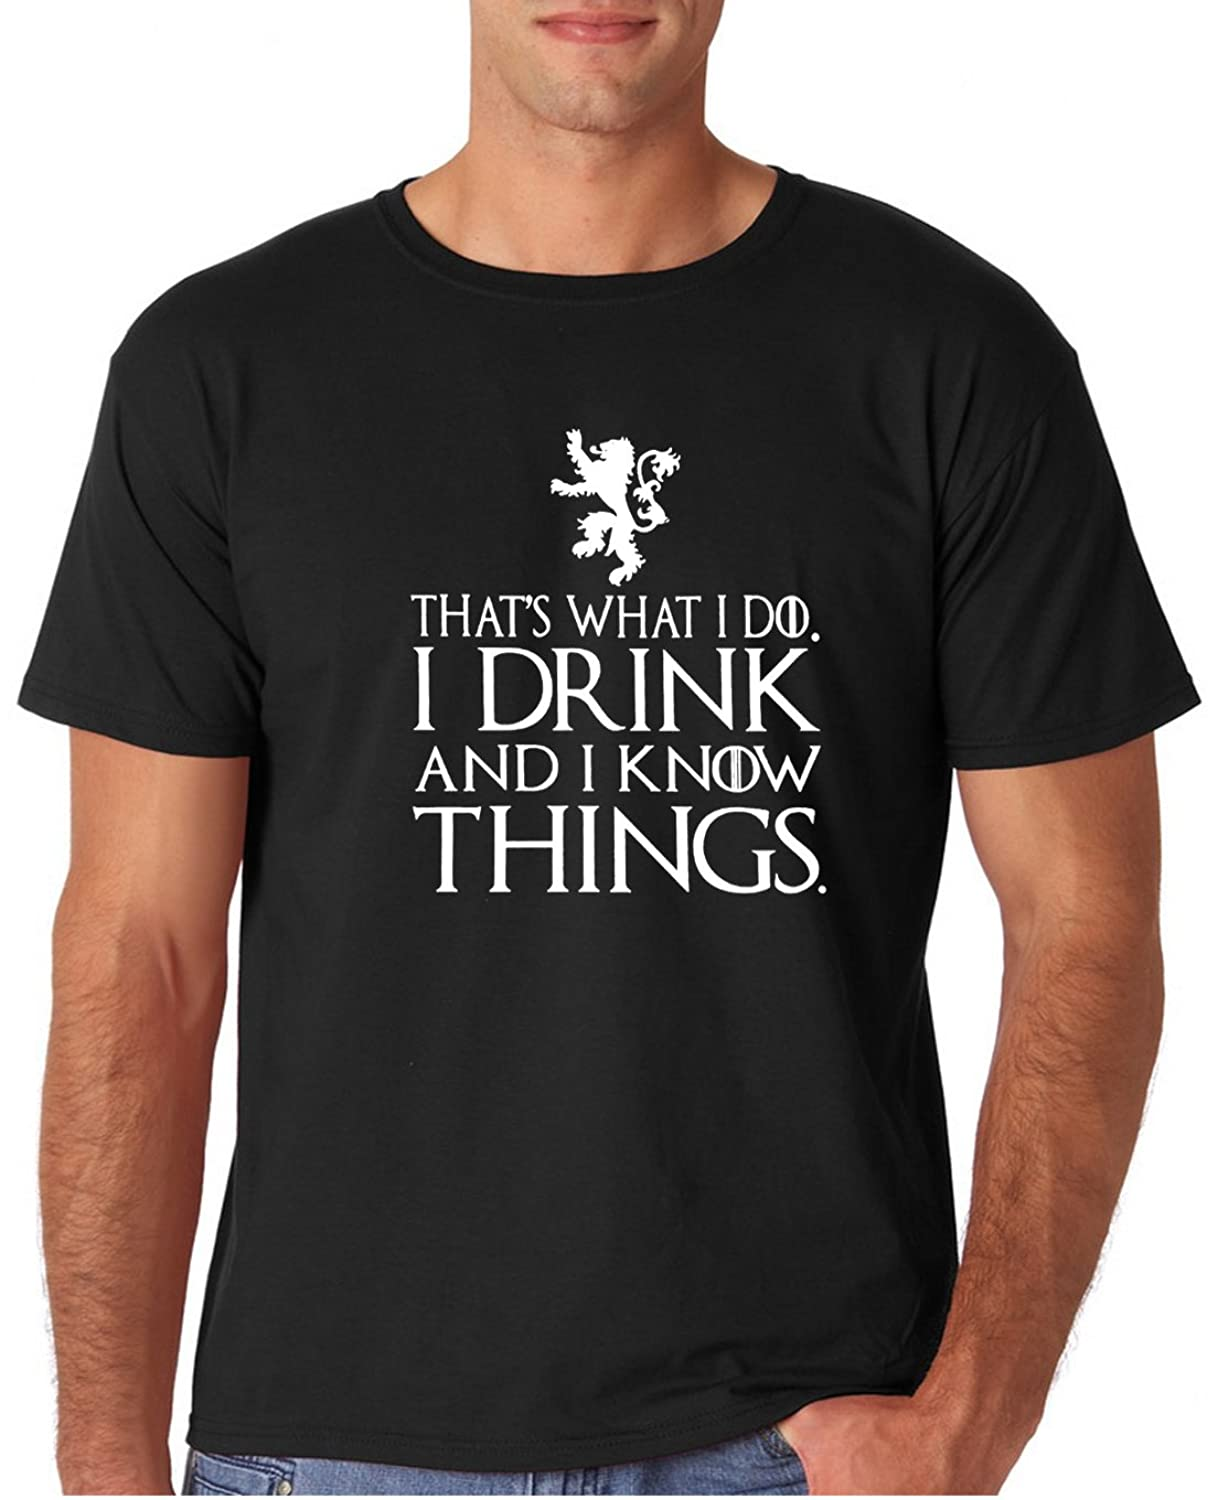 95239a8a2 12.99 Prime Tees Adult That's What I Do I Drink And I Know Things T Shirt